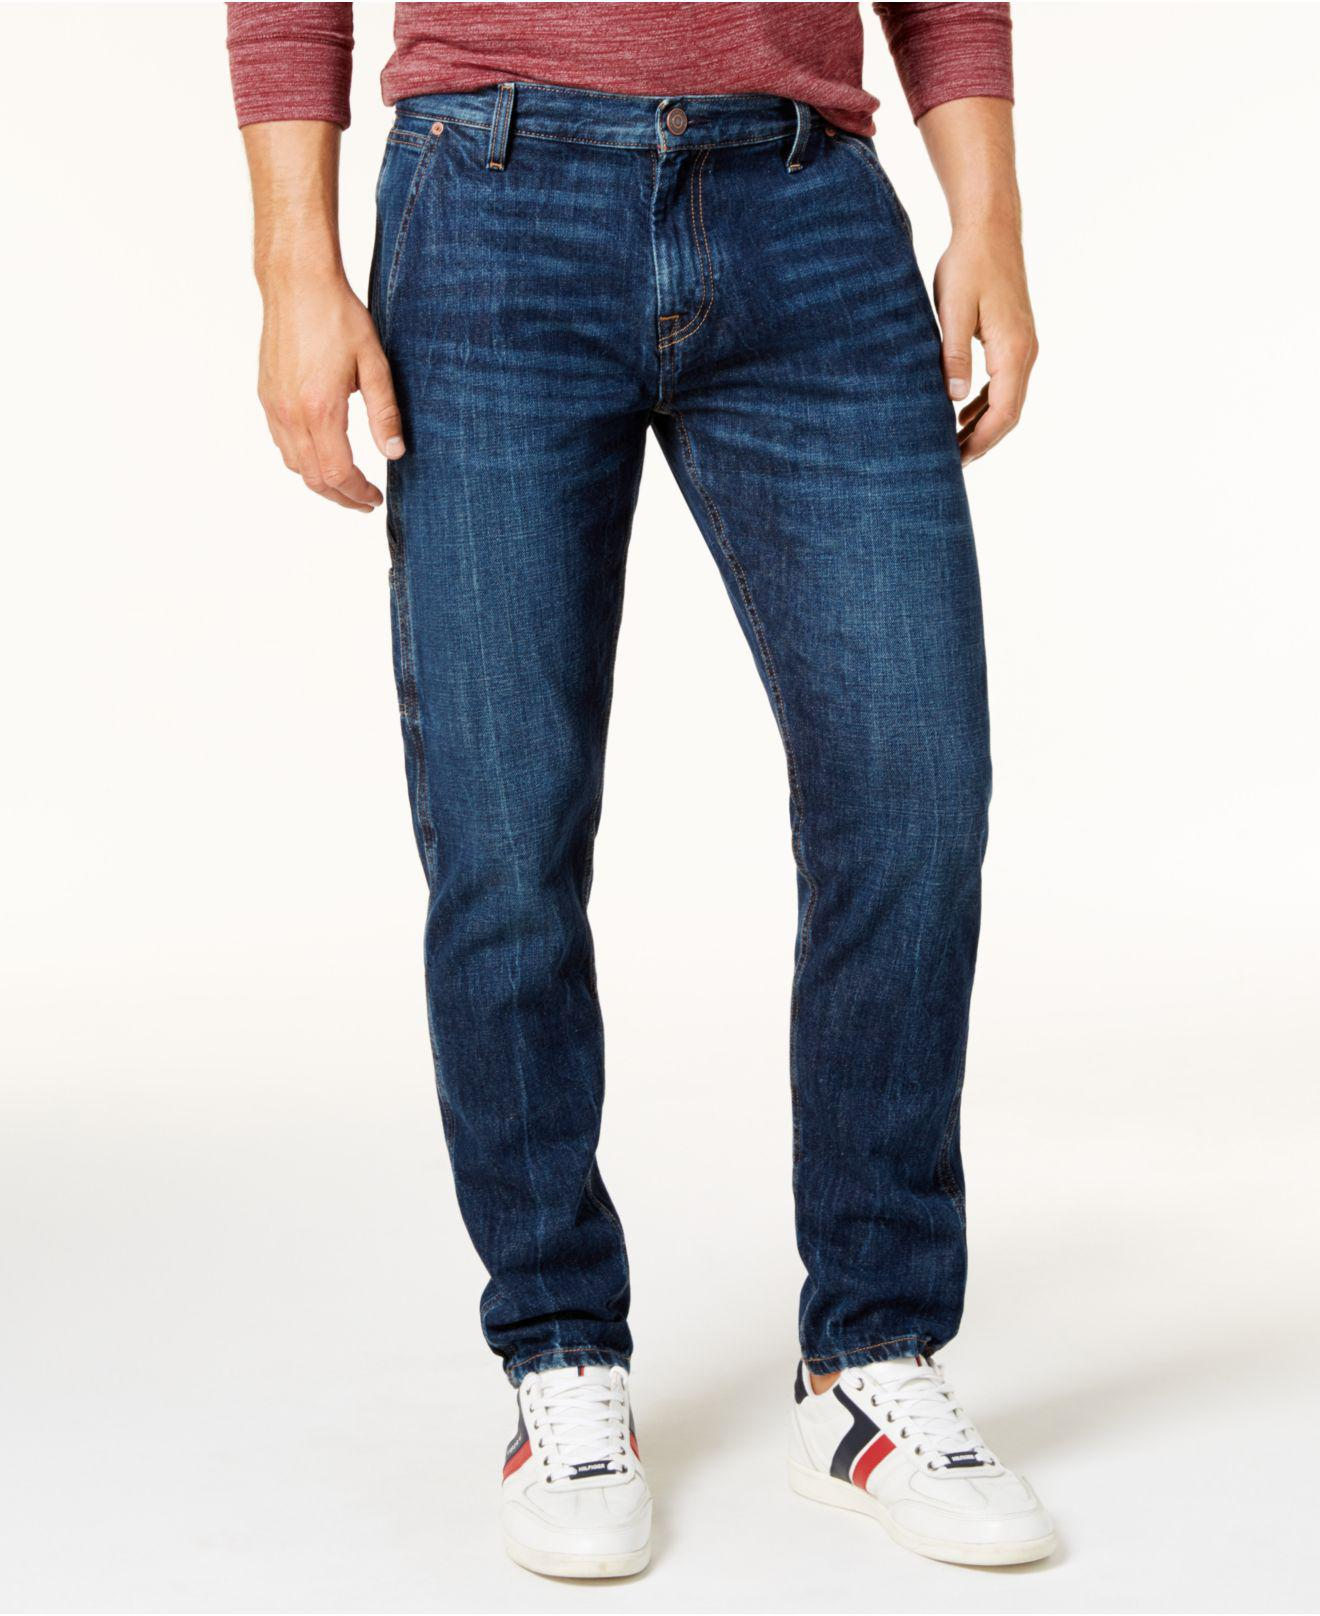 Lyst - Tommy Hilfiger Men s Relaxed Tapered Carpenter Jeans in Blue ... 24bb08afa3